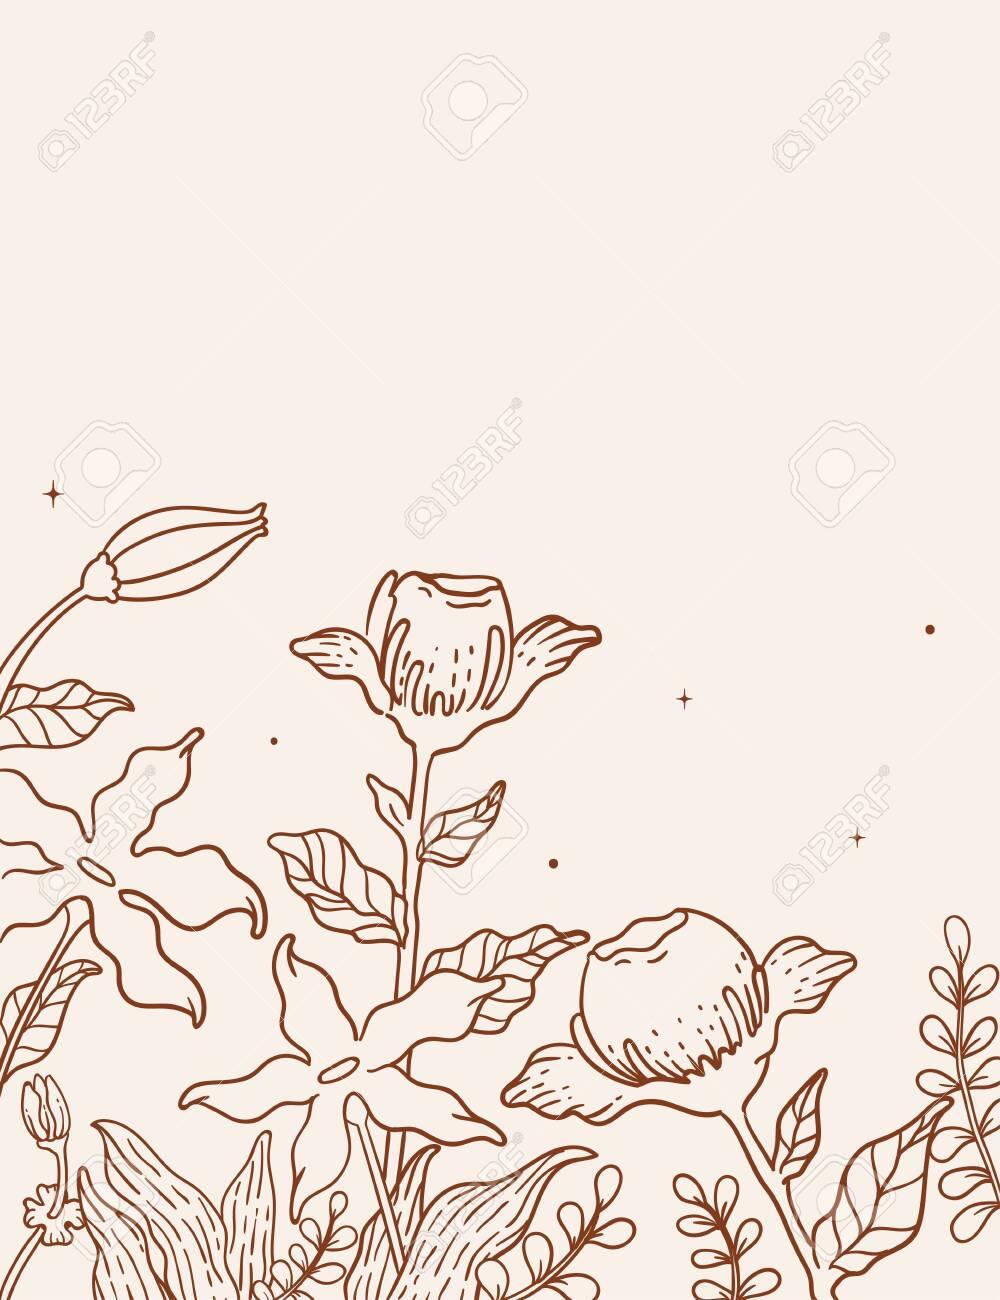 White Batik Background : white, batik, background, Drawn, Illustration, Vector, Graphic, Batik, Flower, Background, Royalty, Cliparts,, Vectors,, Stock, Illustration., Image, 141446036.